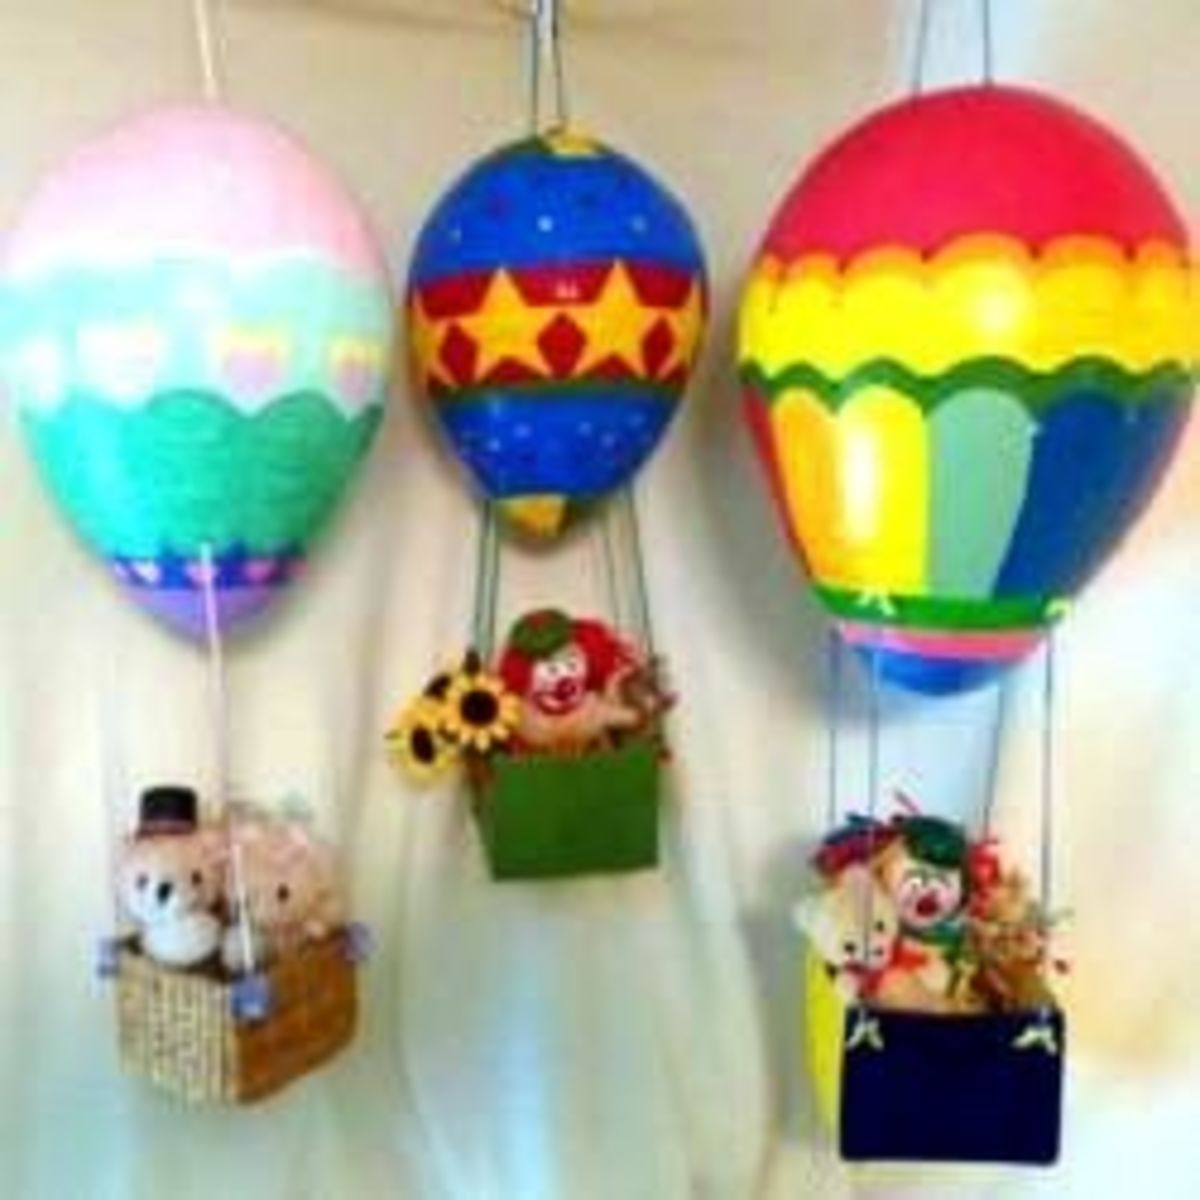 How to Make a Paper Mache Hot Air Balloon